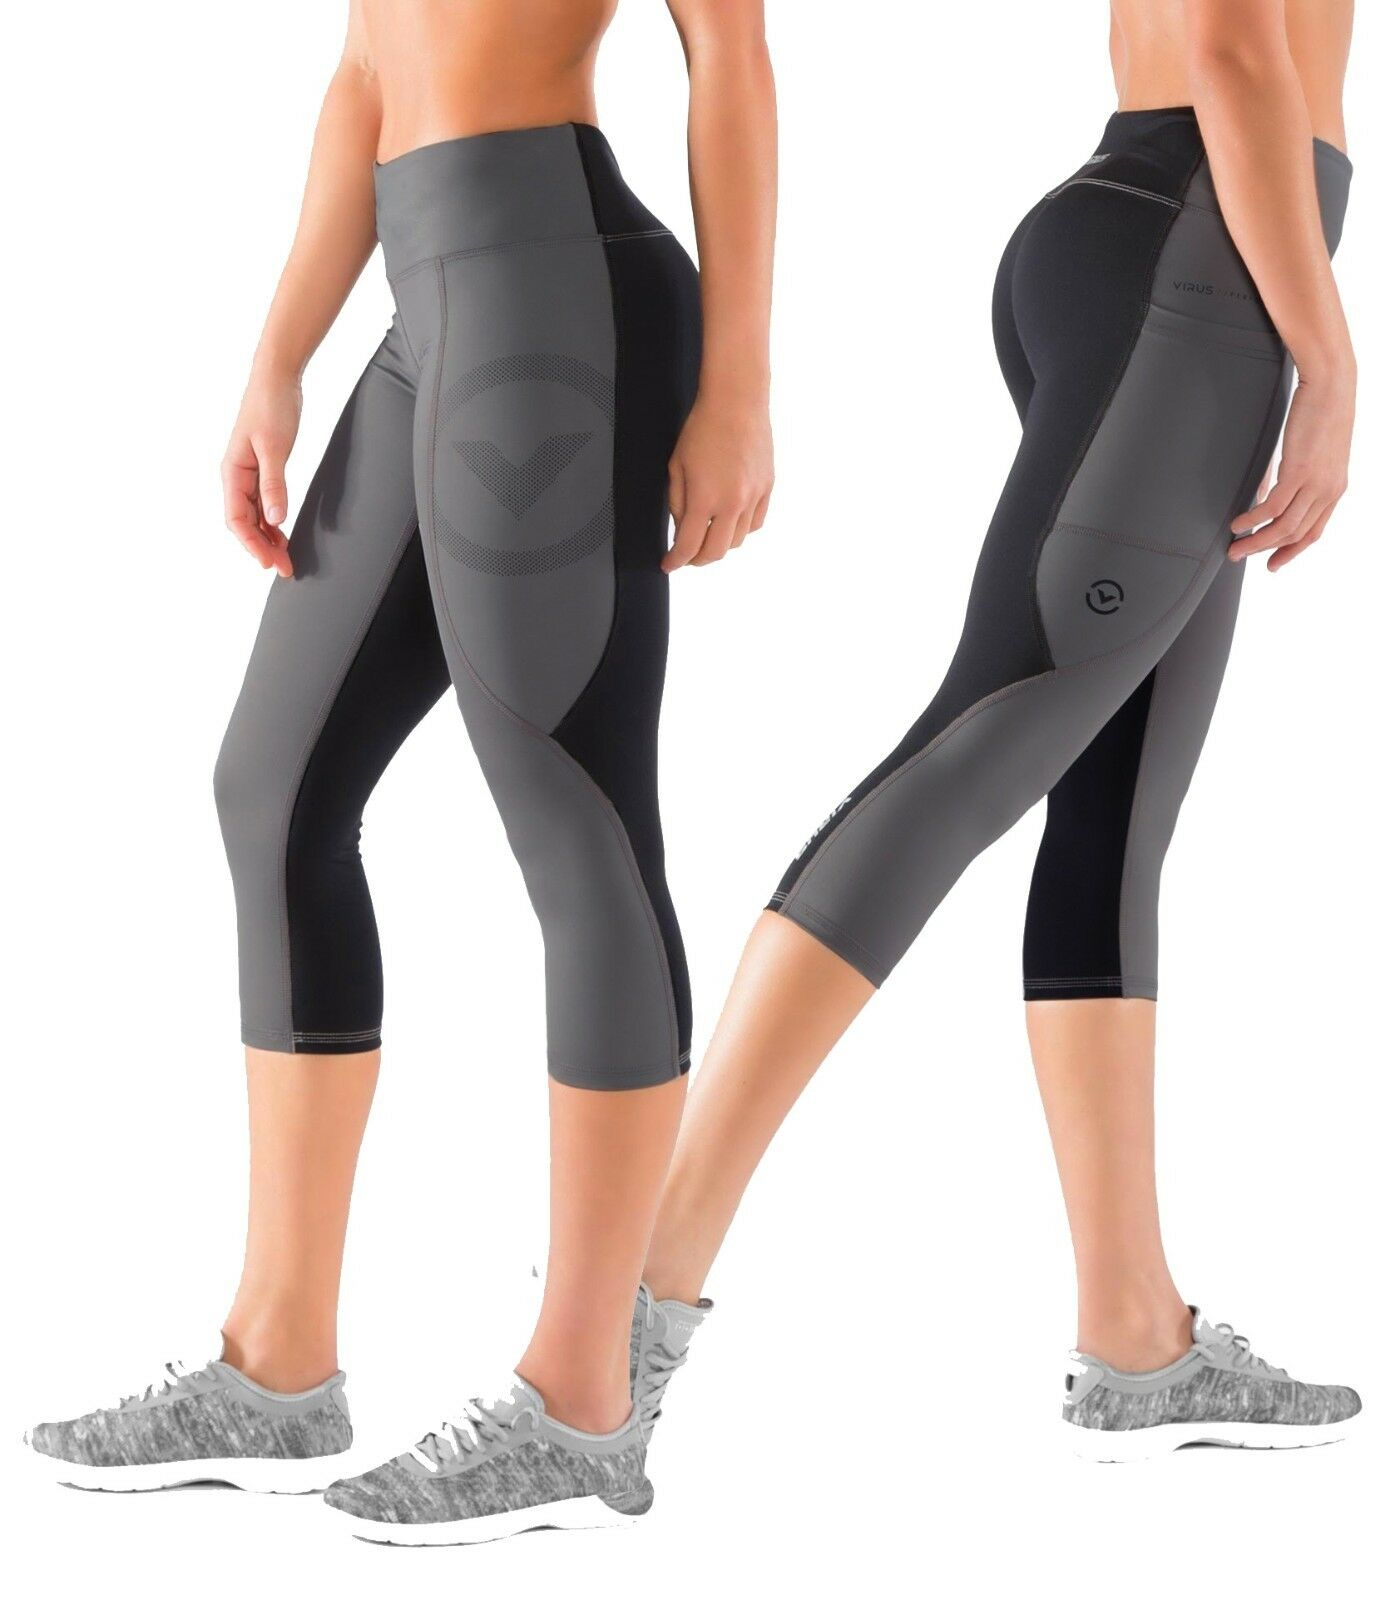 Virus Women's Stay Cool Compression Crop Pants (Eco34),crossfit,gym,workout,yoga